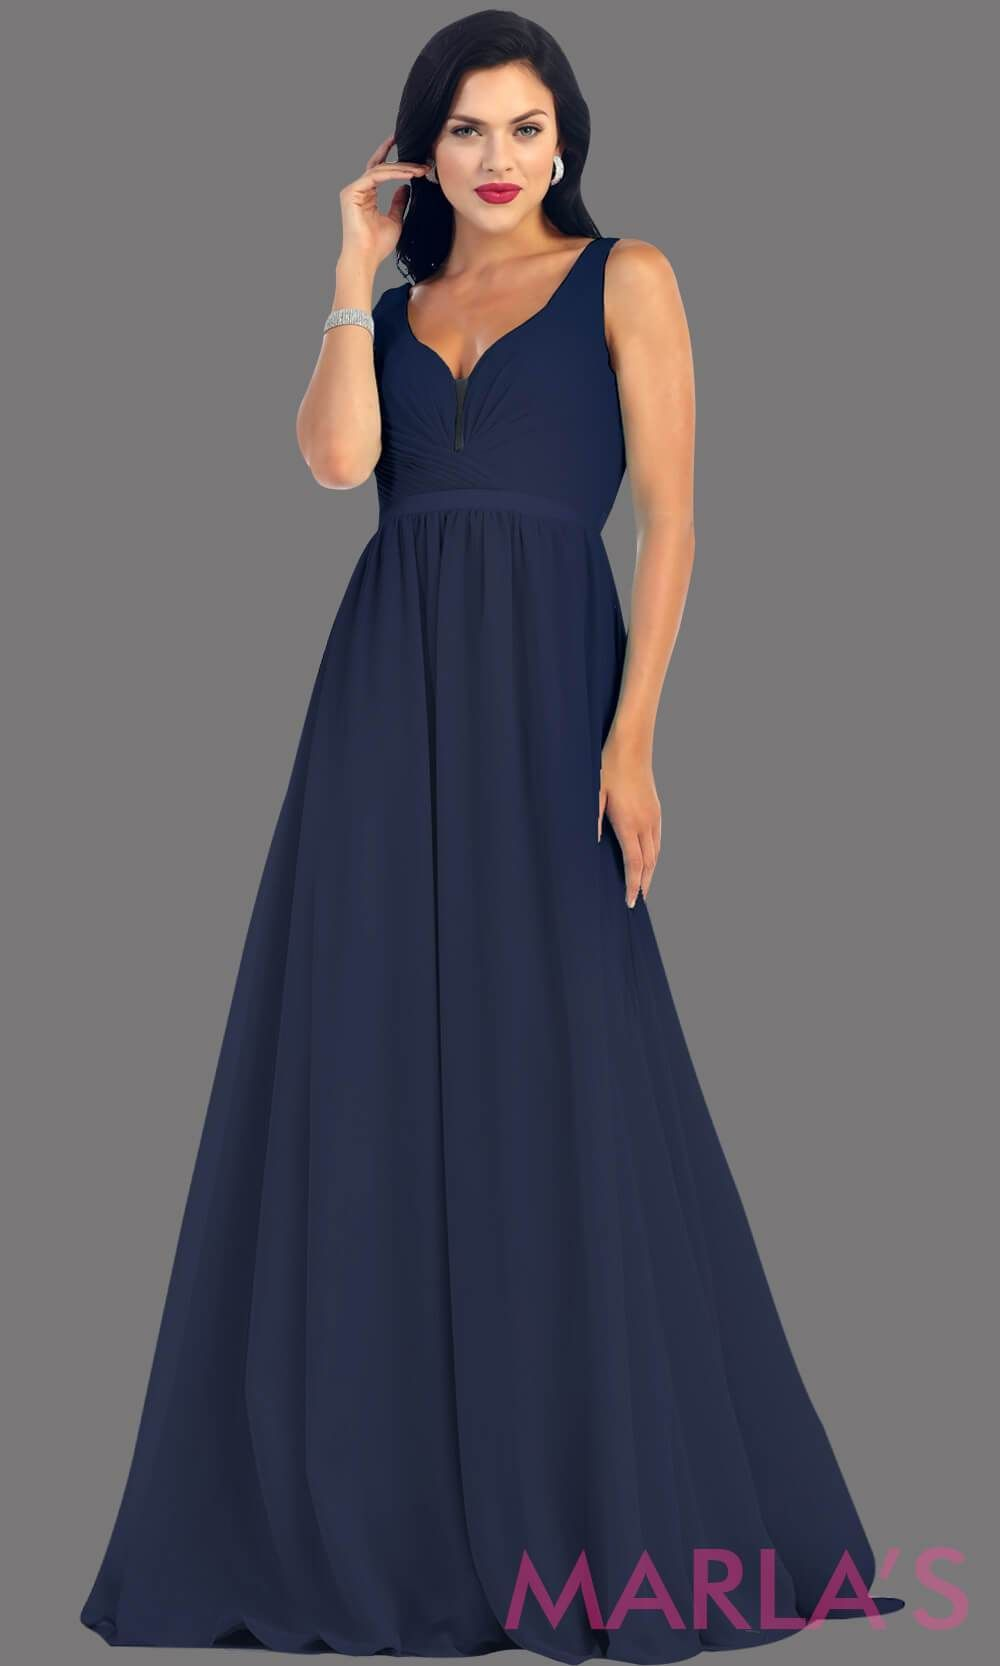 d64ef48fcbe2 Long Navy dress with wide straps and v neck dress. This simple evening gown  is perfect for a wedding guest dress, simple light prom dress, ...